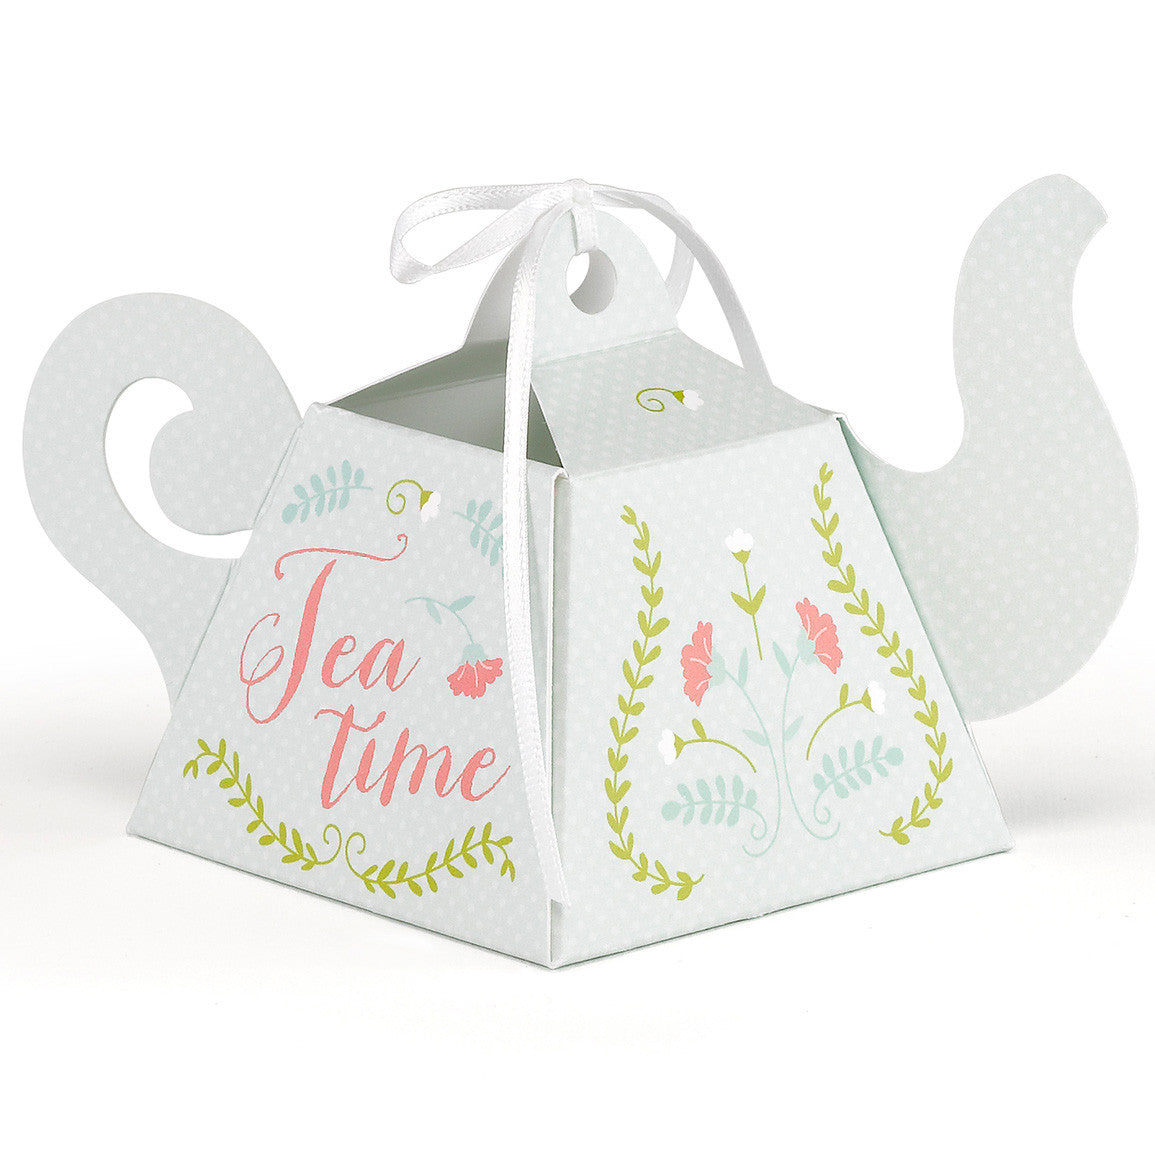 Teapot Tea Time Party Favor Box (Pack of 12) – Candy Cake Weddings